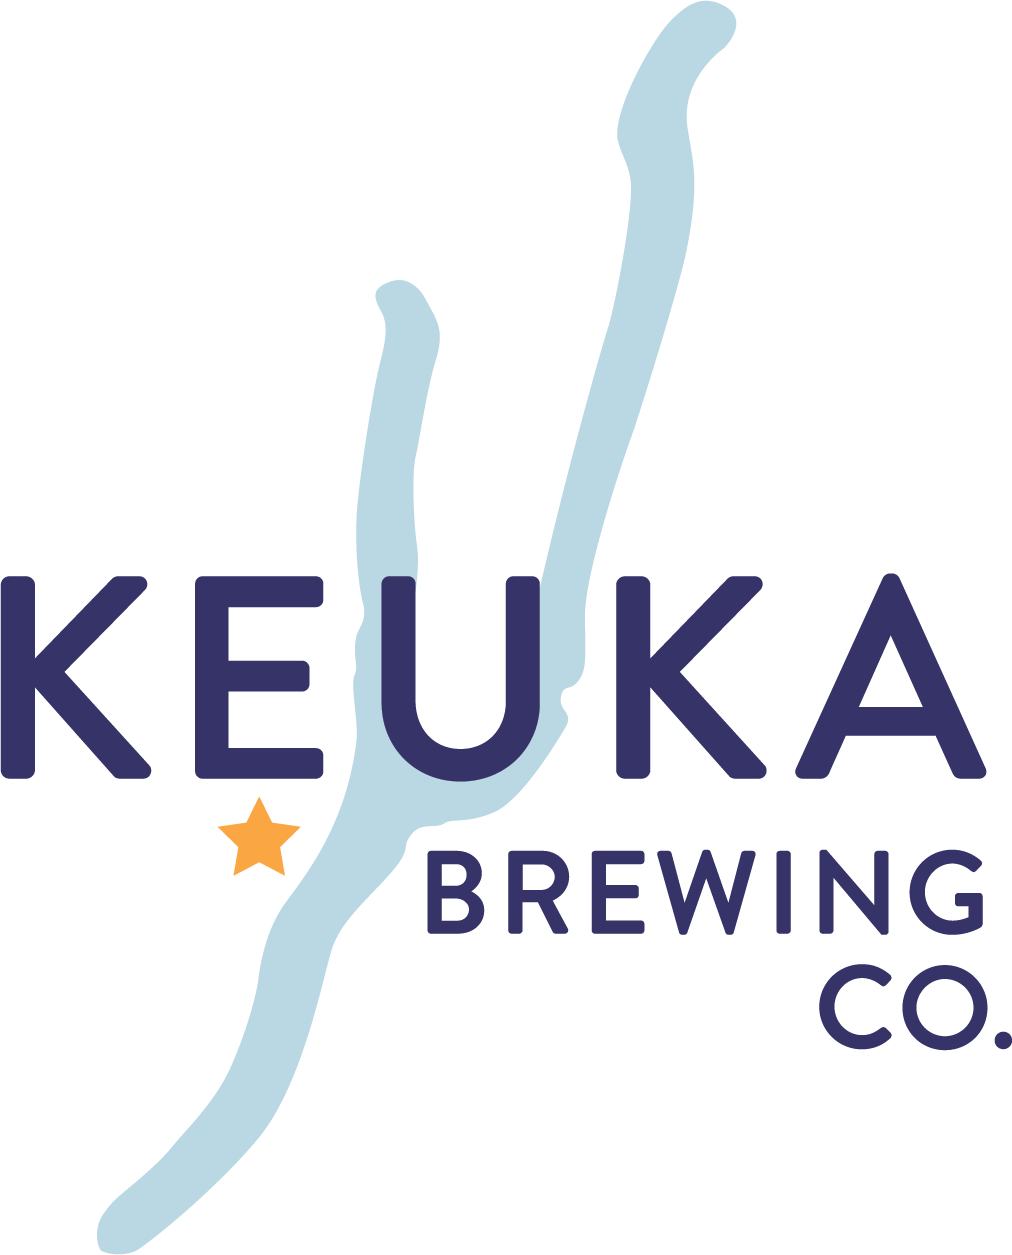 Keuka Brewing Co.